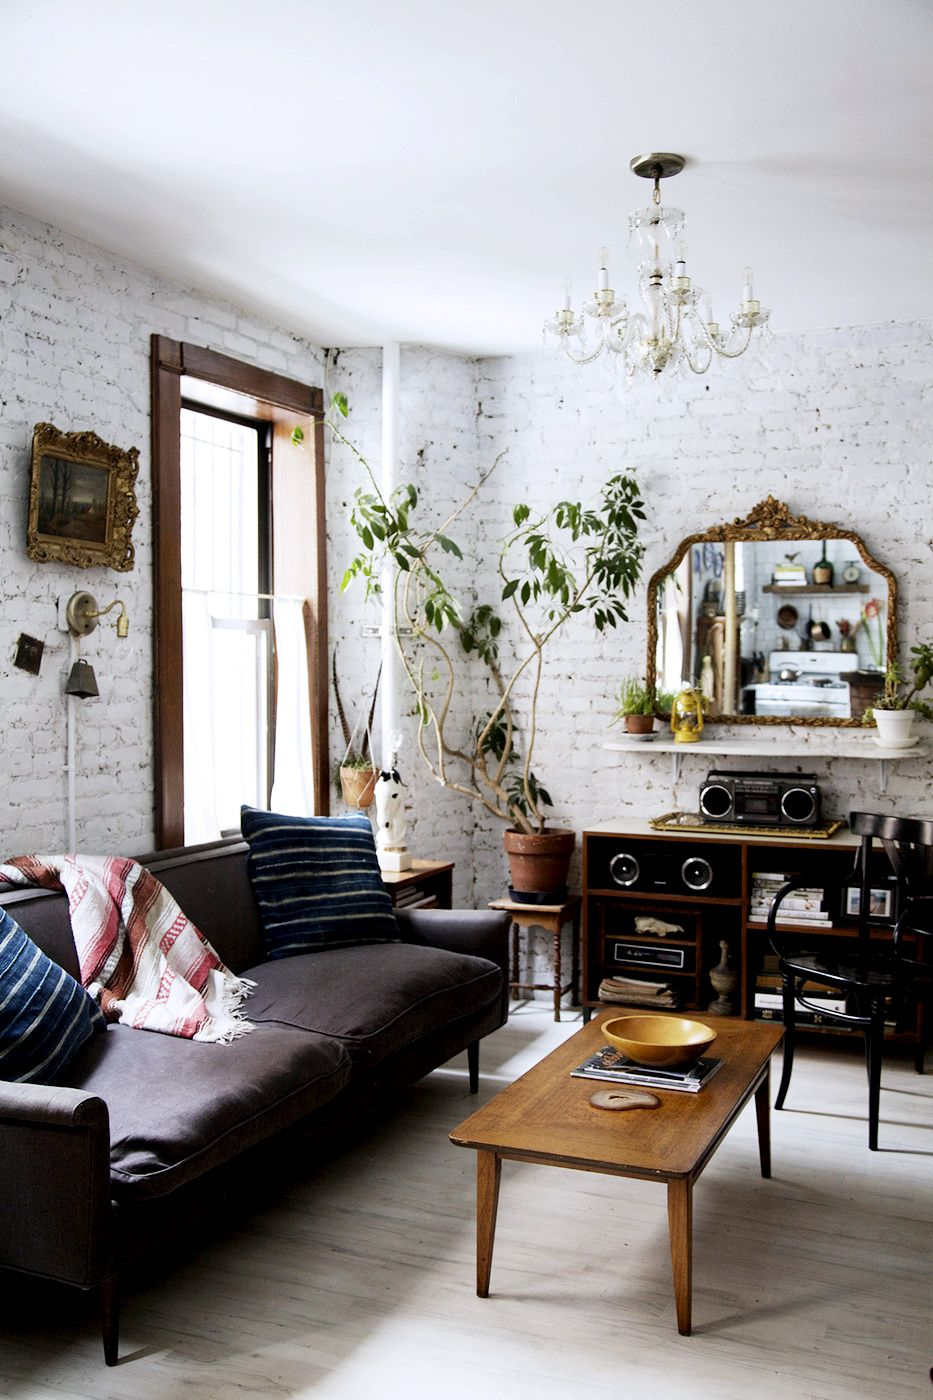 How A Designer Turned A Tiny Space Into A Chic Guest Bedroom Home Living Room Farm House Living Room Home Decor